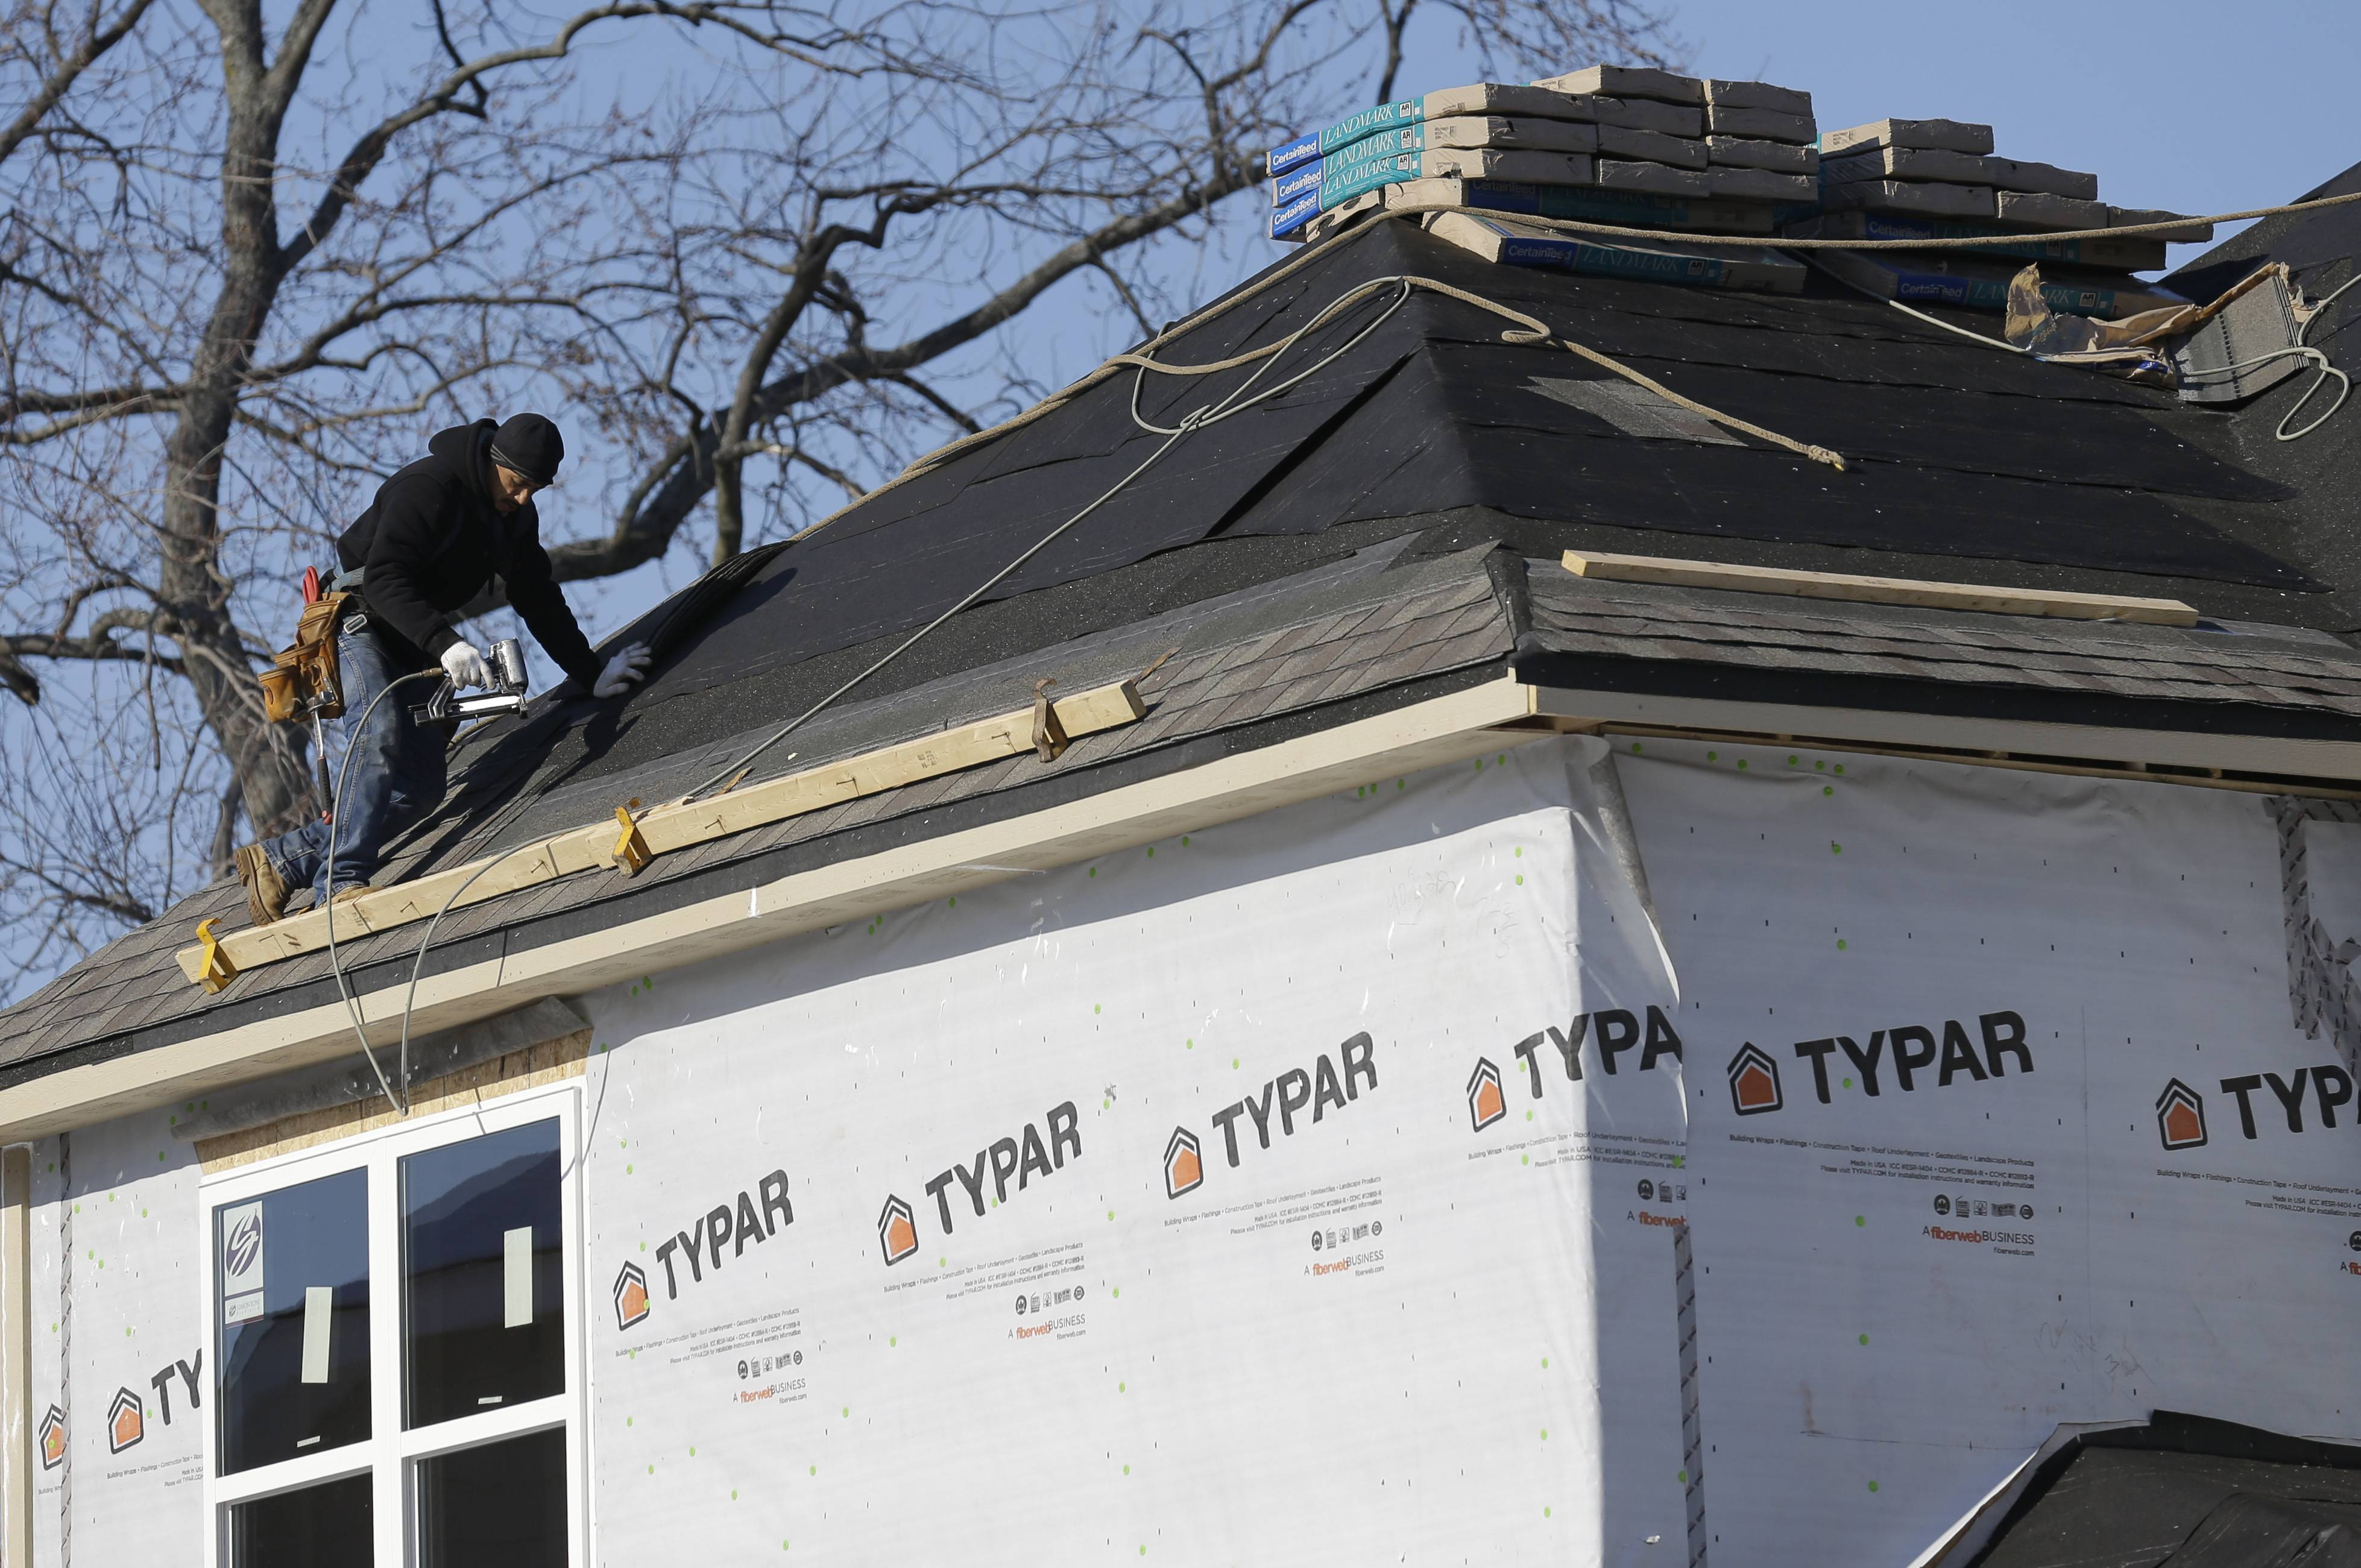 In this Friday, Dec. 27, 2013, photo, a construction worker roofs a new home in Wilmette, Ill. Many skilled workers needed to put up a home fled to other careers after the housing collapse several years ago. Now, there aren't enough of them as the housing market recovers.